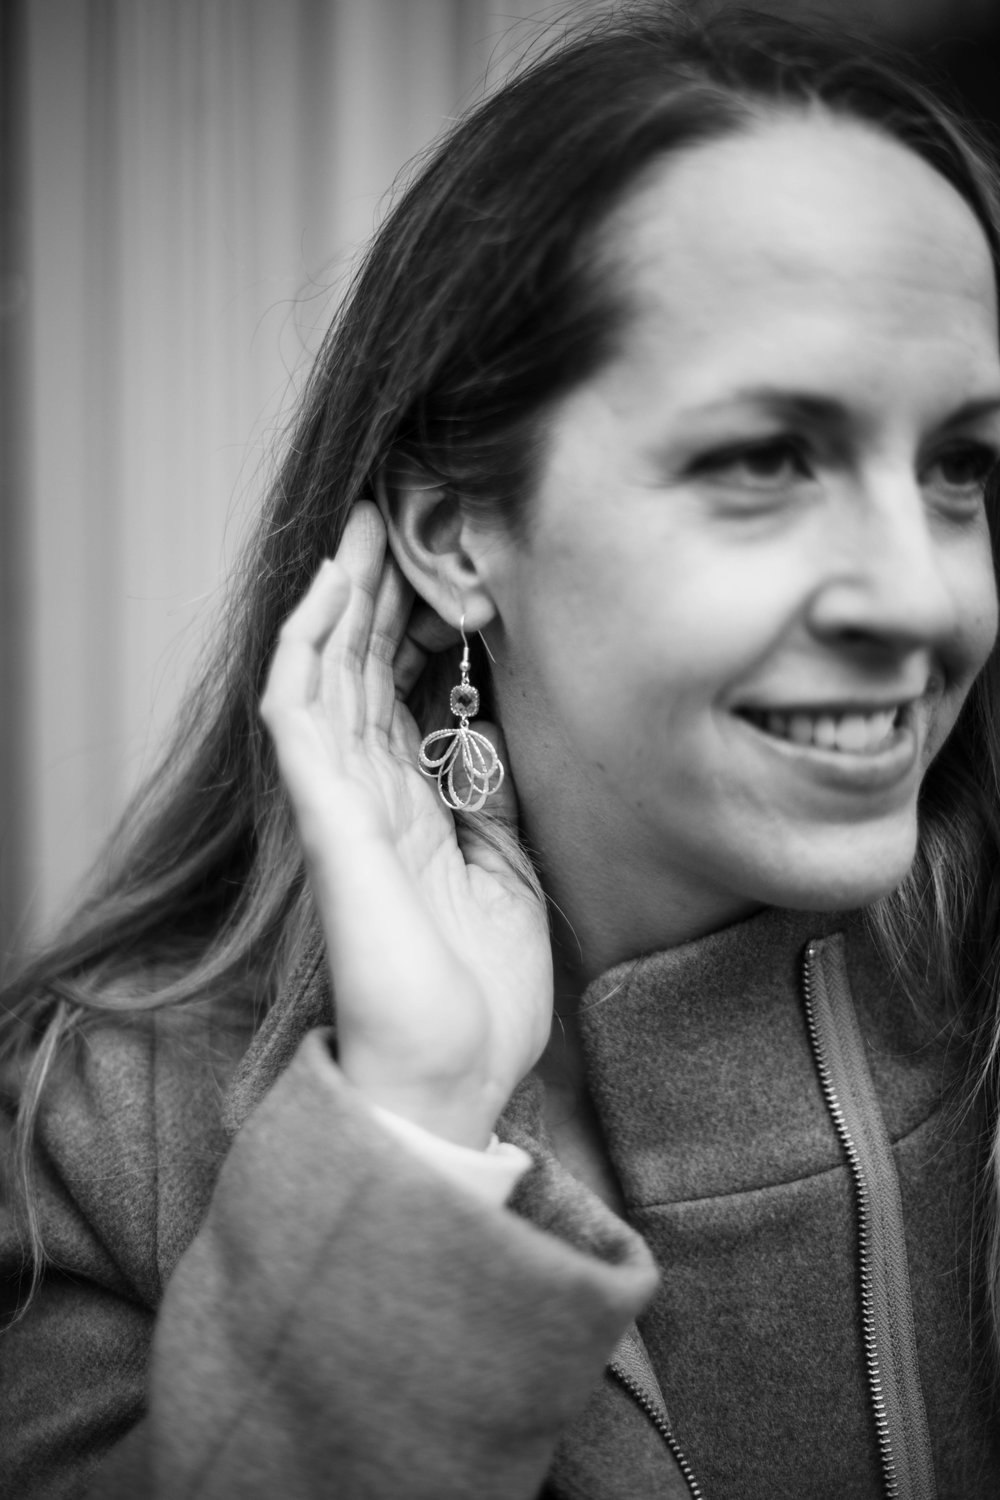 Chicago based jewelry designer Stacy of grace + hudson interviewed for Inspired Chicago